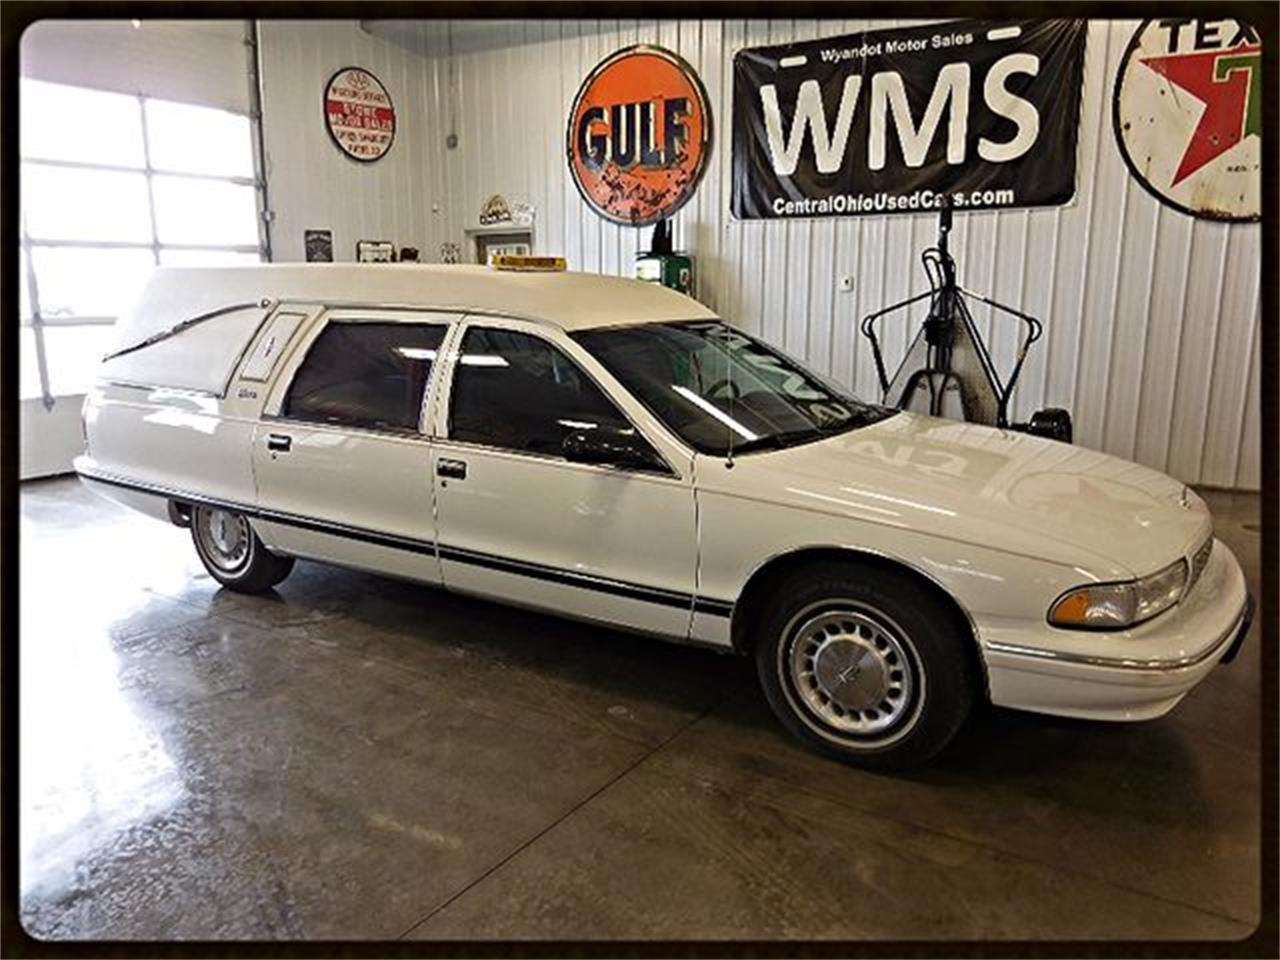 Classic Vehicles for Sale on ClassicCars.com for Under $5,000 - Pg 2